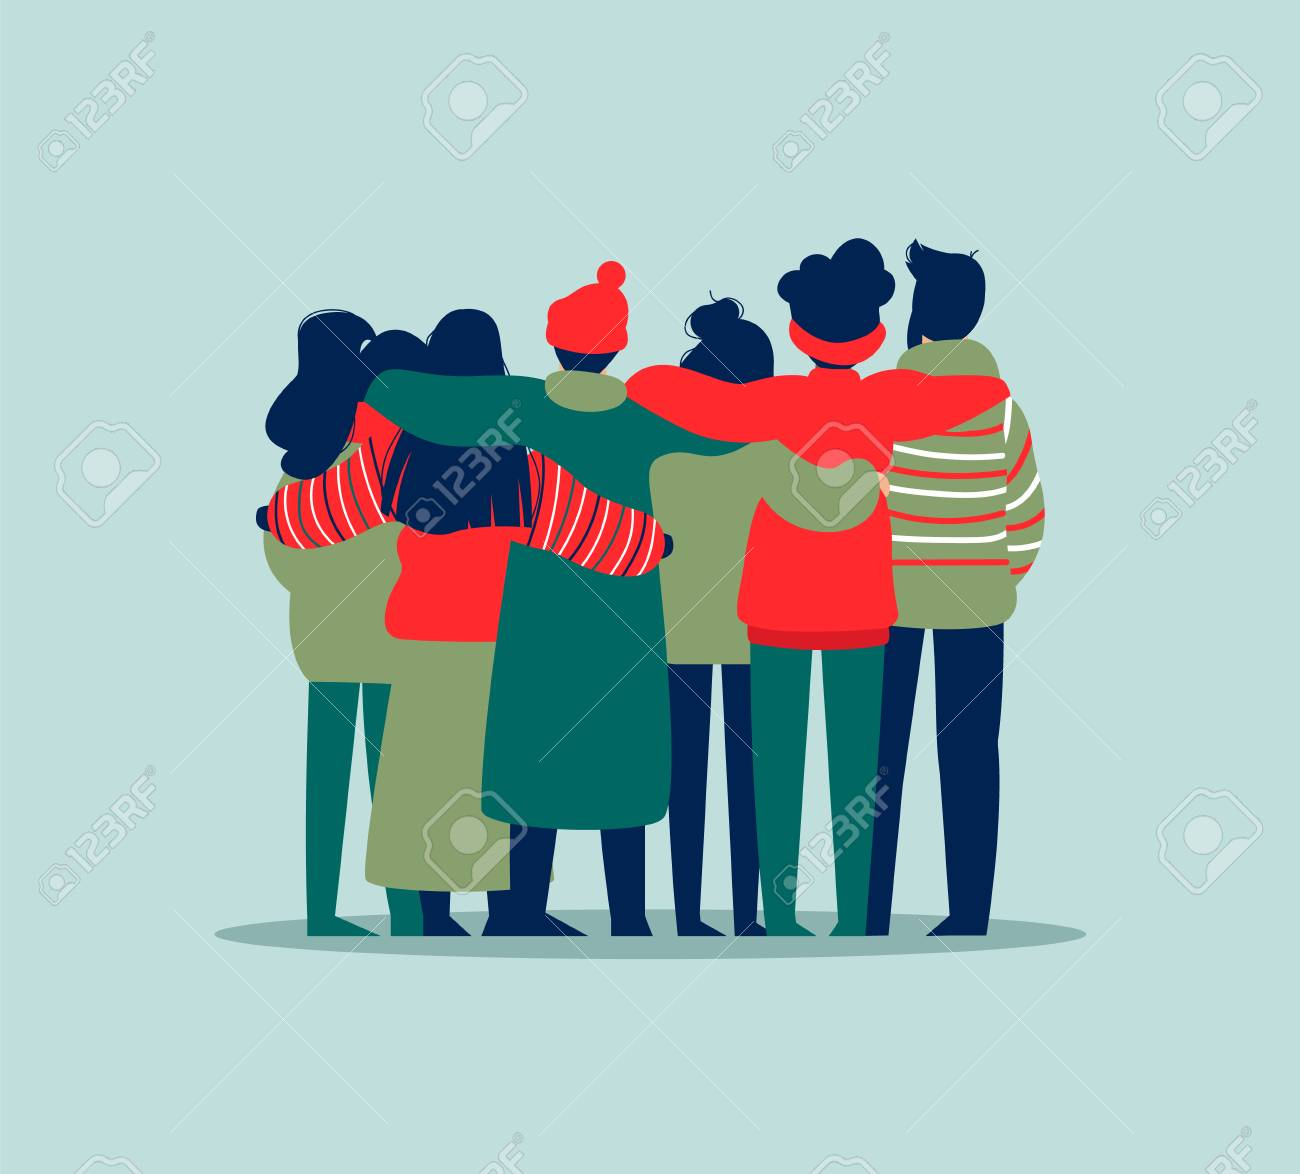 Diverse friend group of people hugging together in winter clothes for christmas or seasonal celebration. Girls and boys team hug on isolated background with copy space. - 113542990